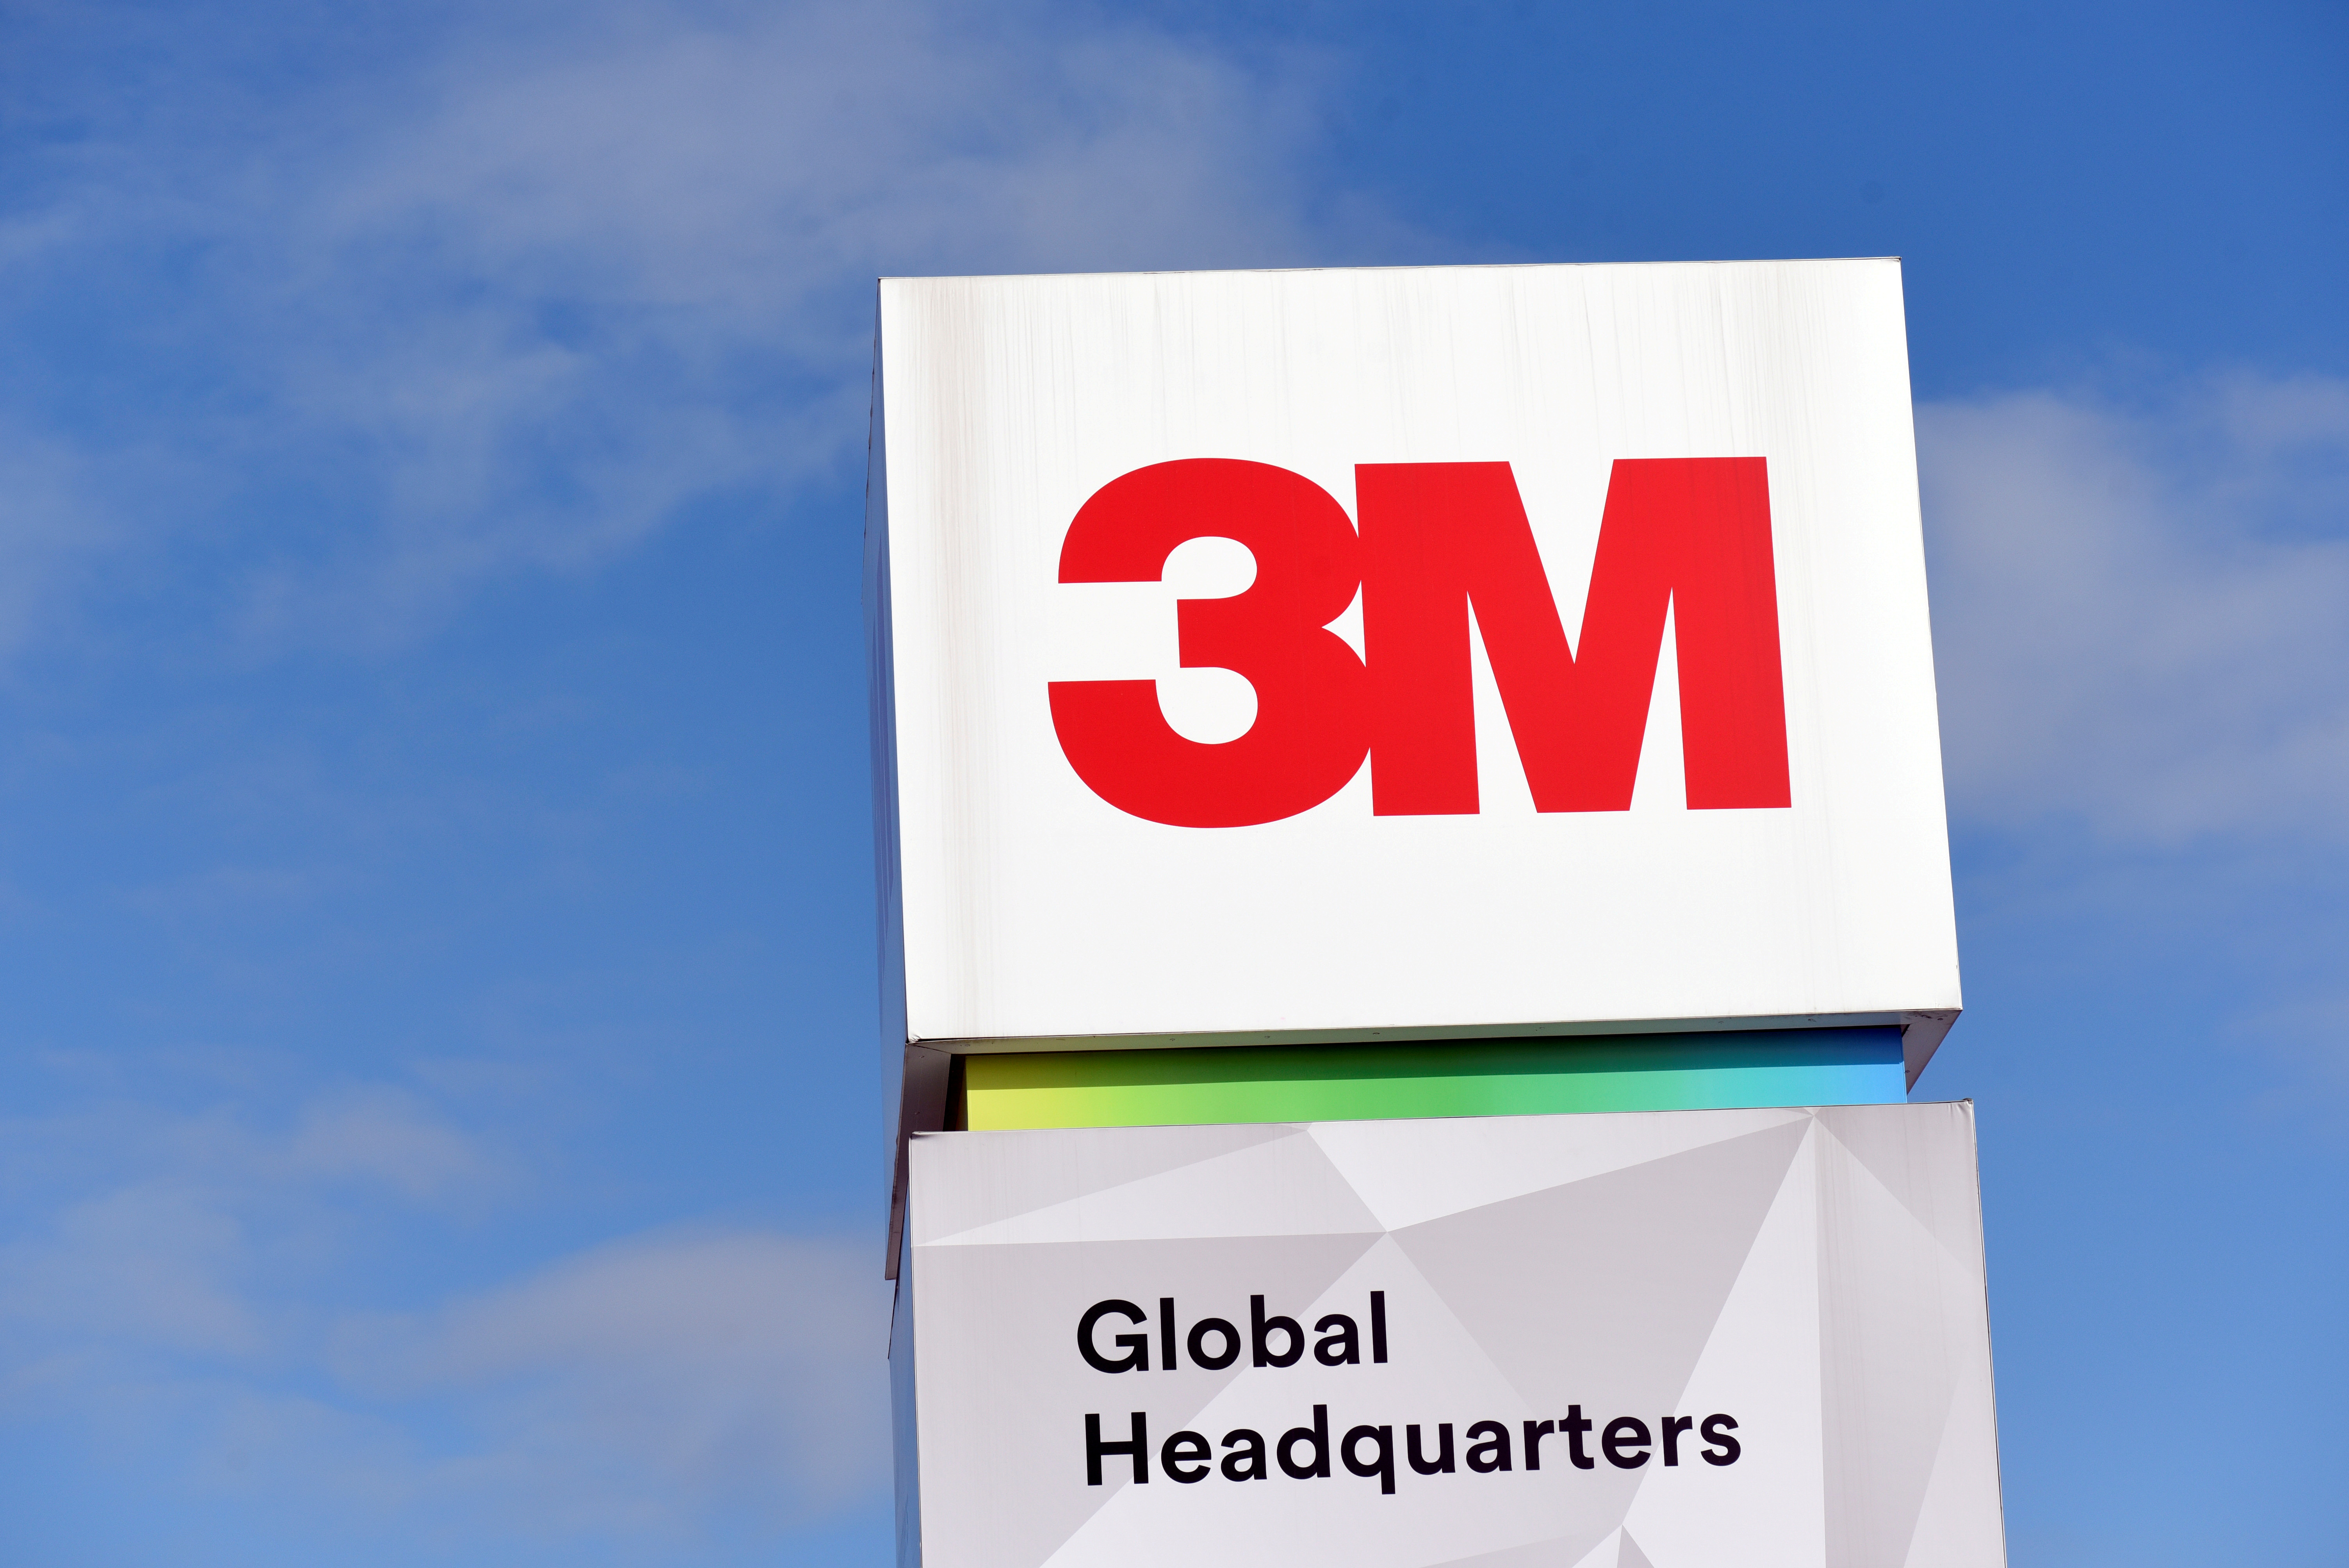 File photo: The 3M logo is seen at its global headquarters in Maplewood, Minnesota, U.S. on March 4, 2020. REUTERS/Nicholas Pfosi